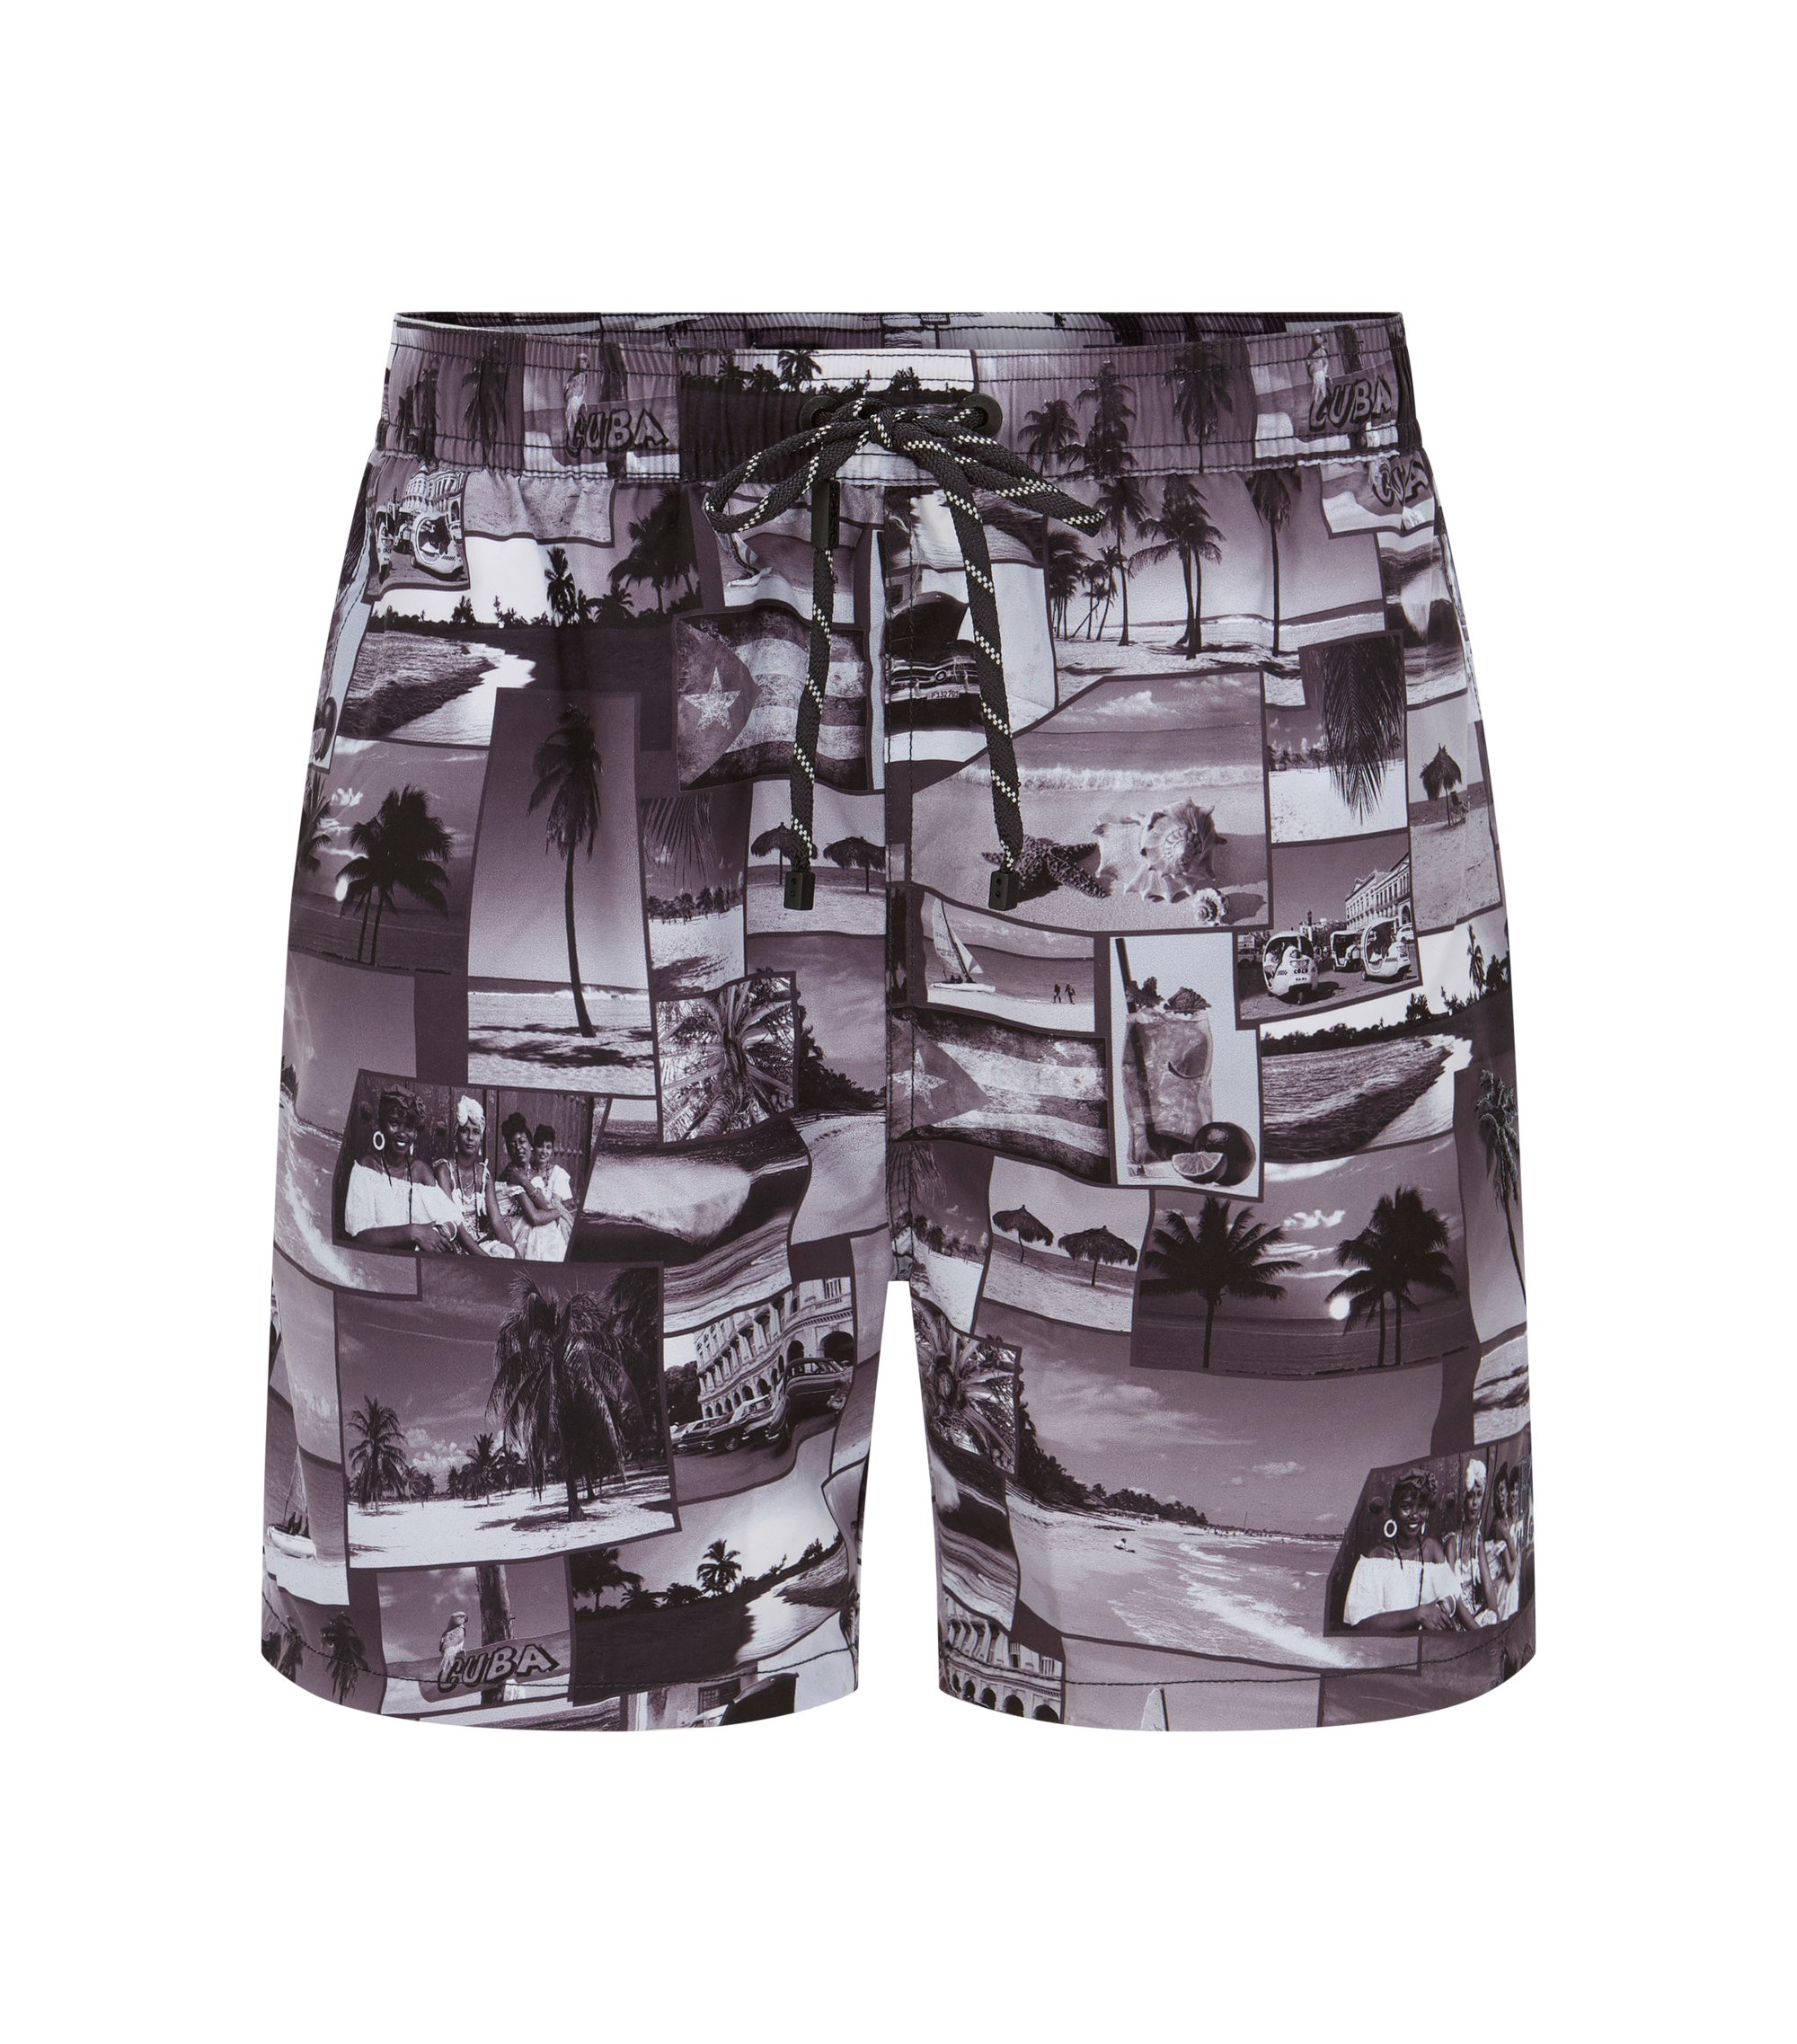 Island-print swim shorts in quick-drying fabric, Grey